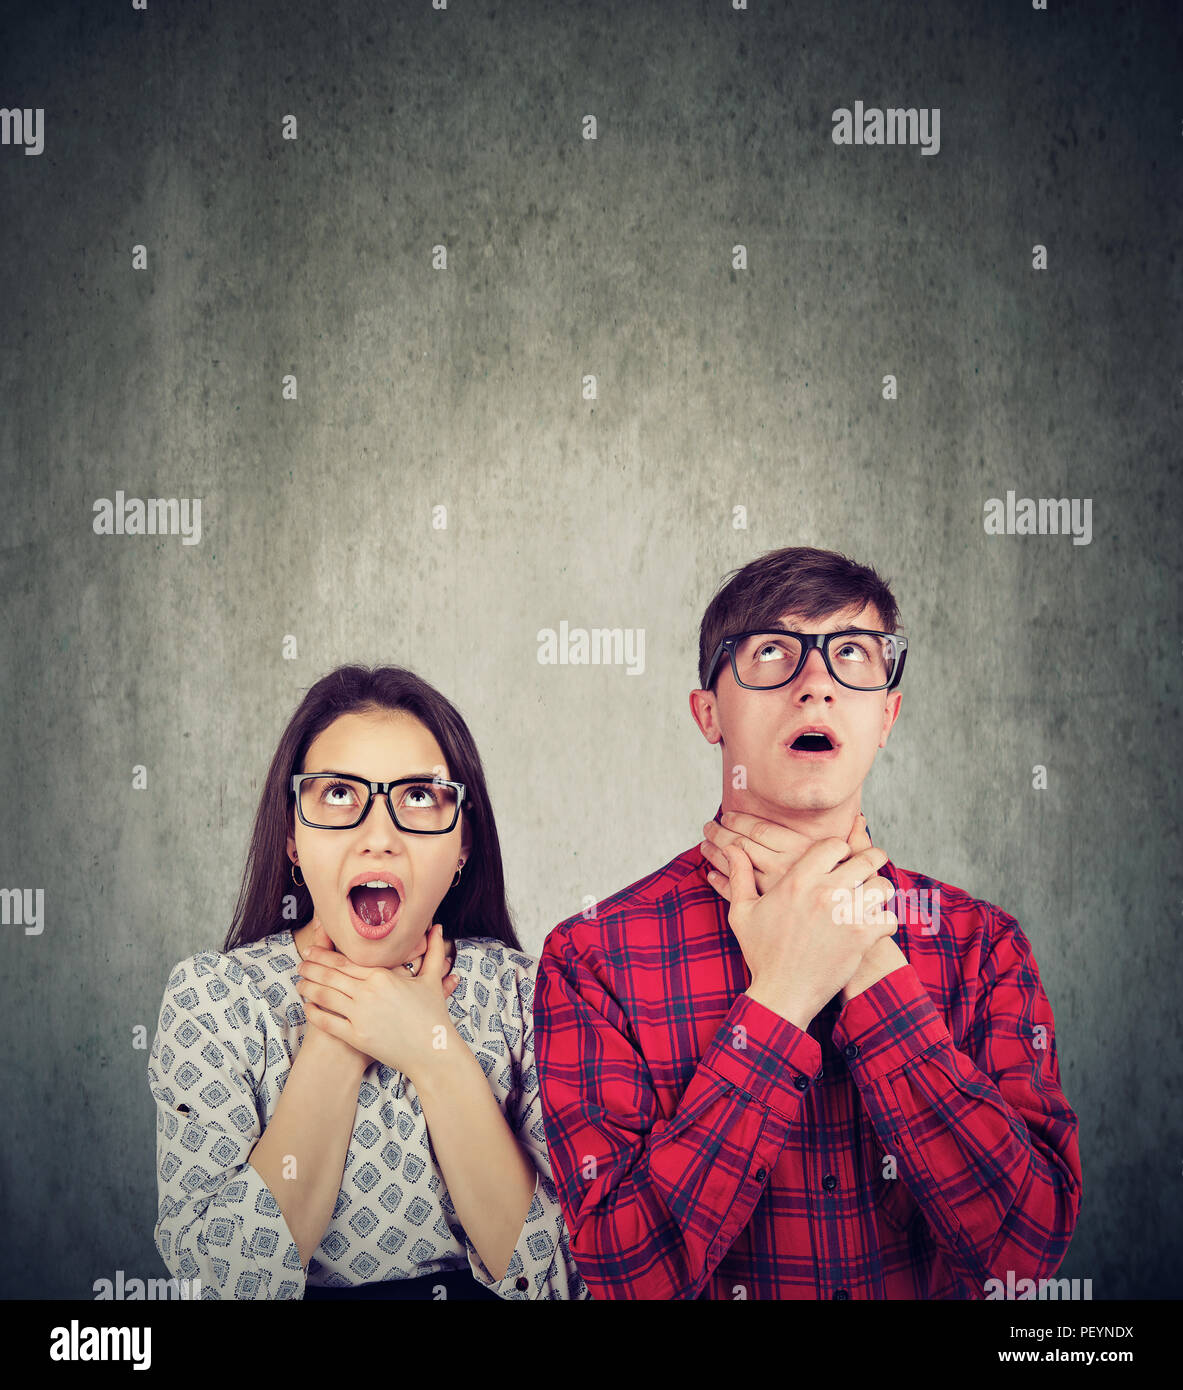 Young man and woman suffocating themselves looking irritated with being in relationship and looking up - Stock Image